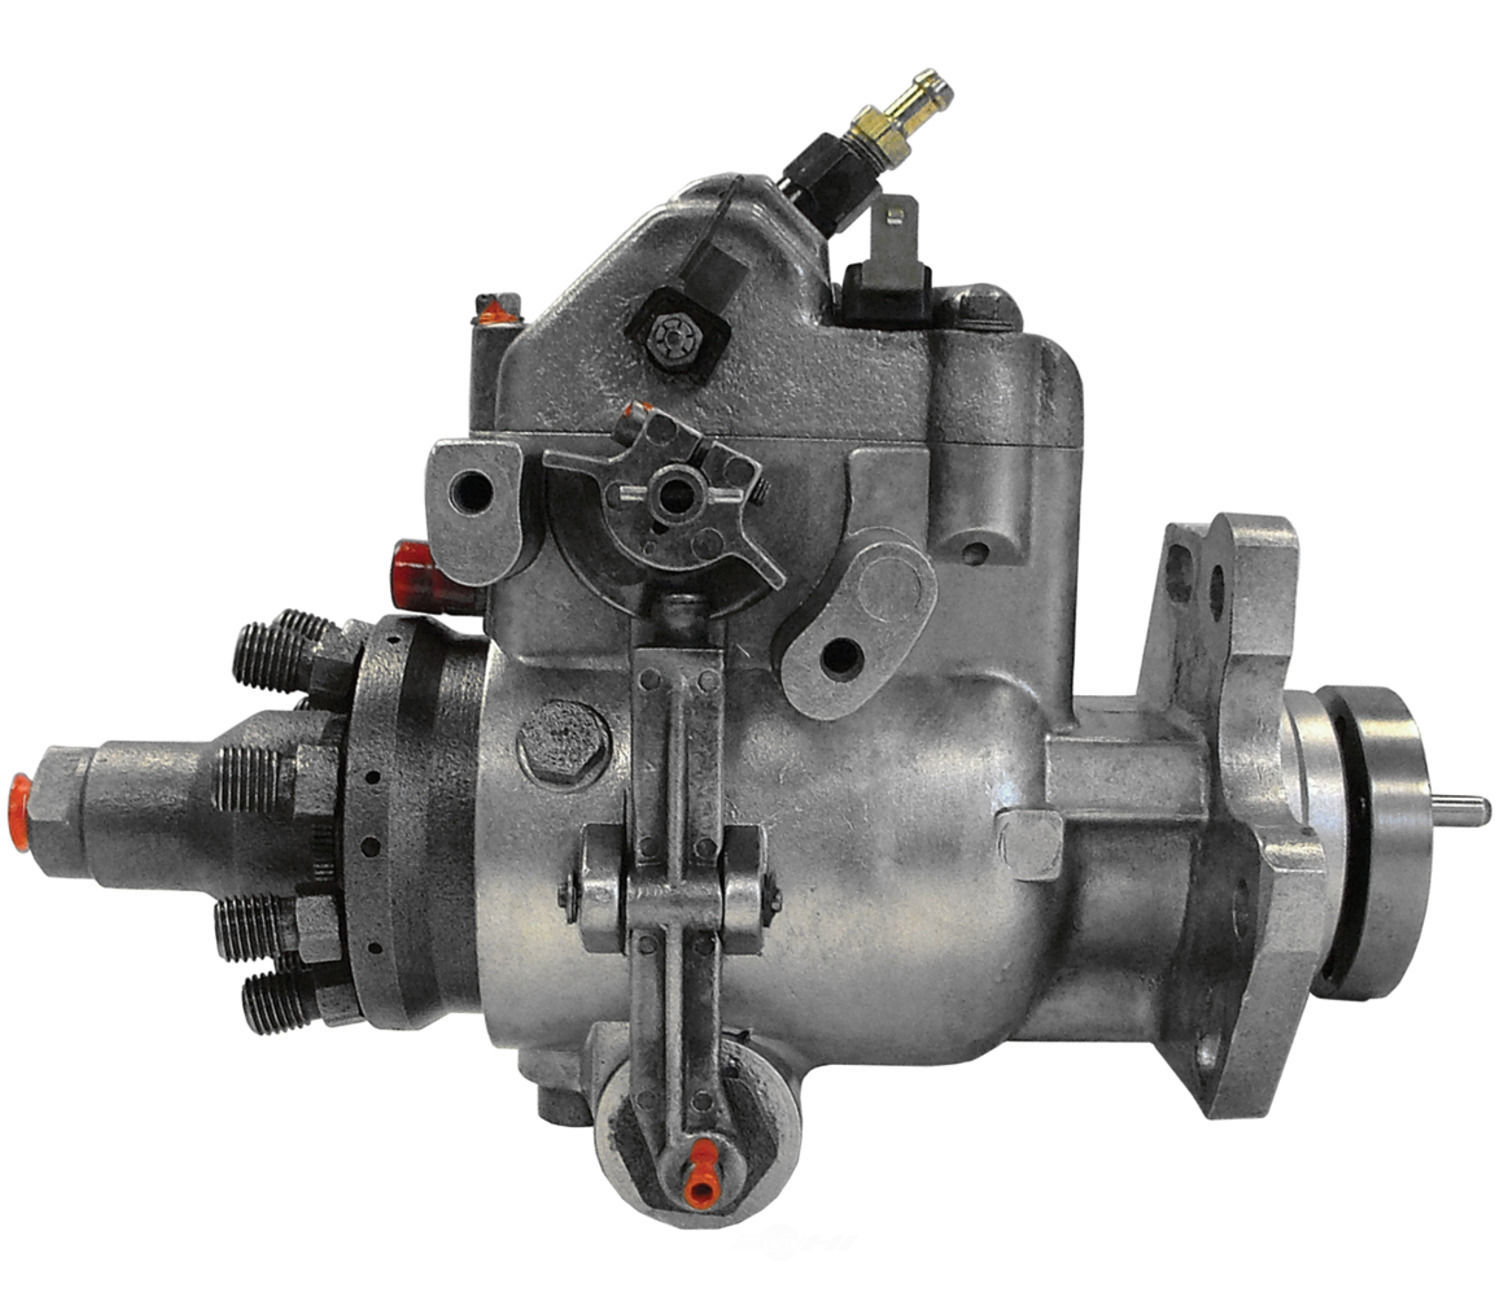 CARDONE/A-1 CARDONE - Reman Fuel Injection Pump - A1C 2H-111